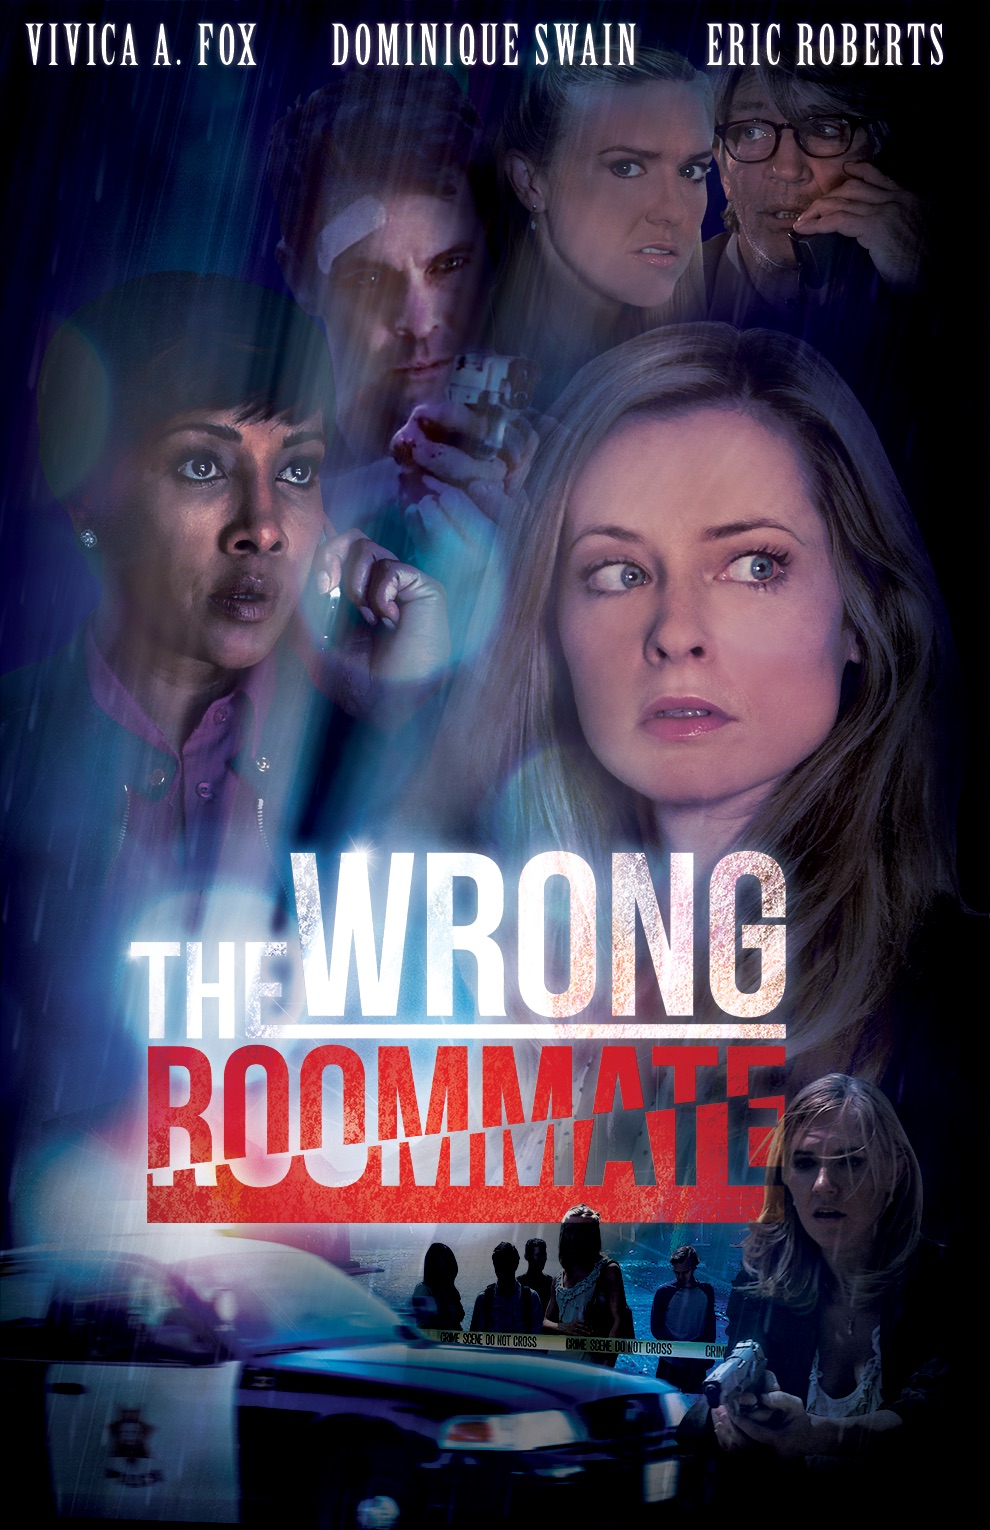 the roommate full movie free download